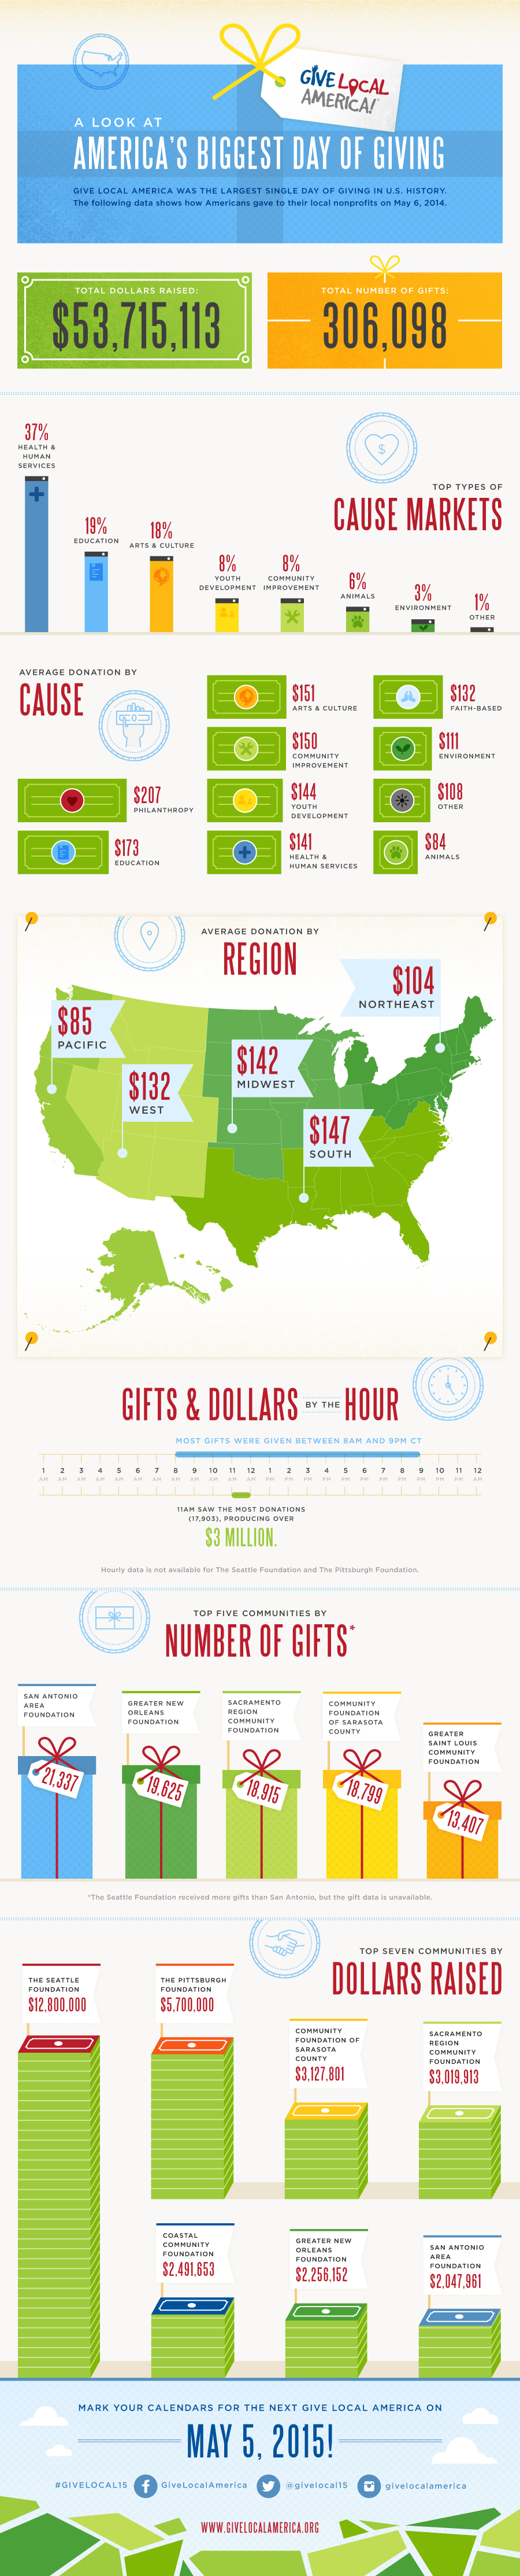 America's Biggest Day of Giving Infographic